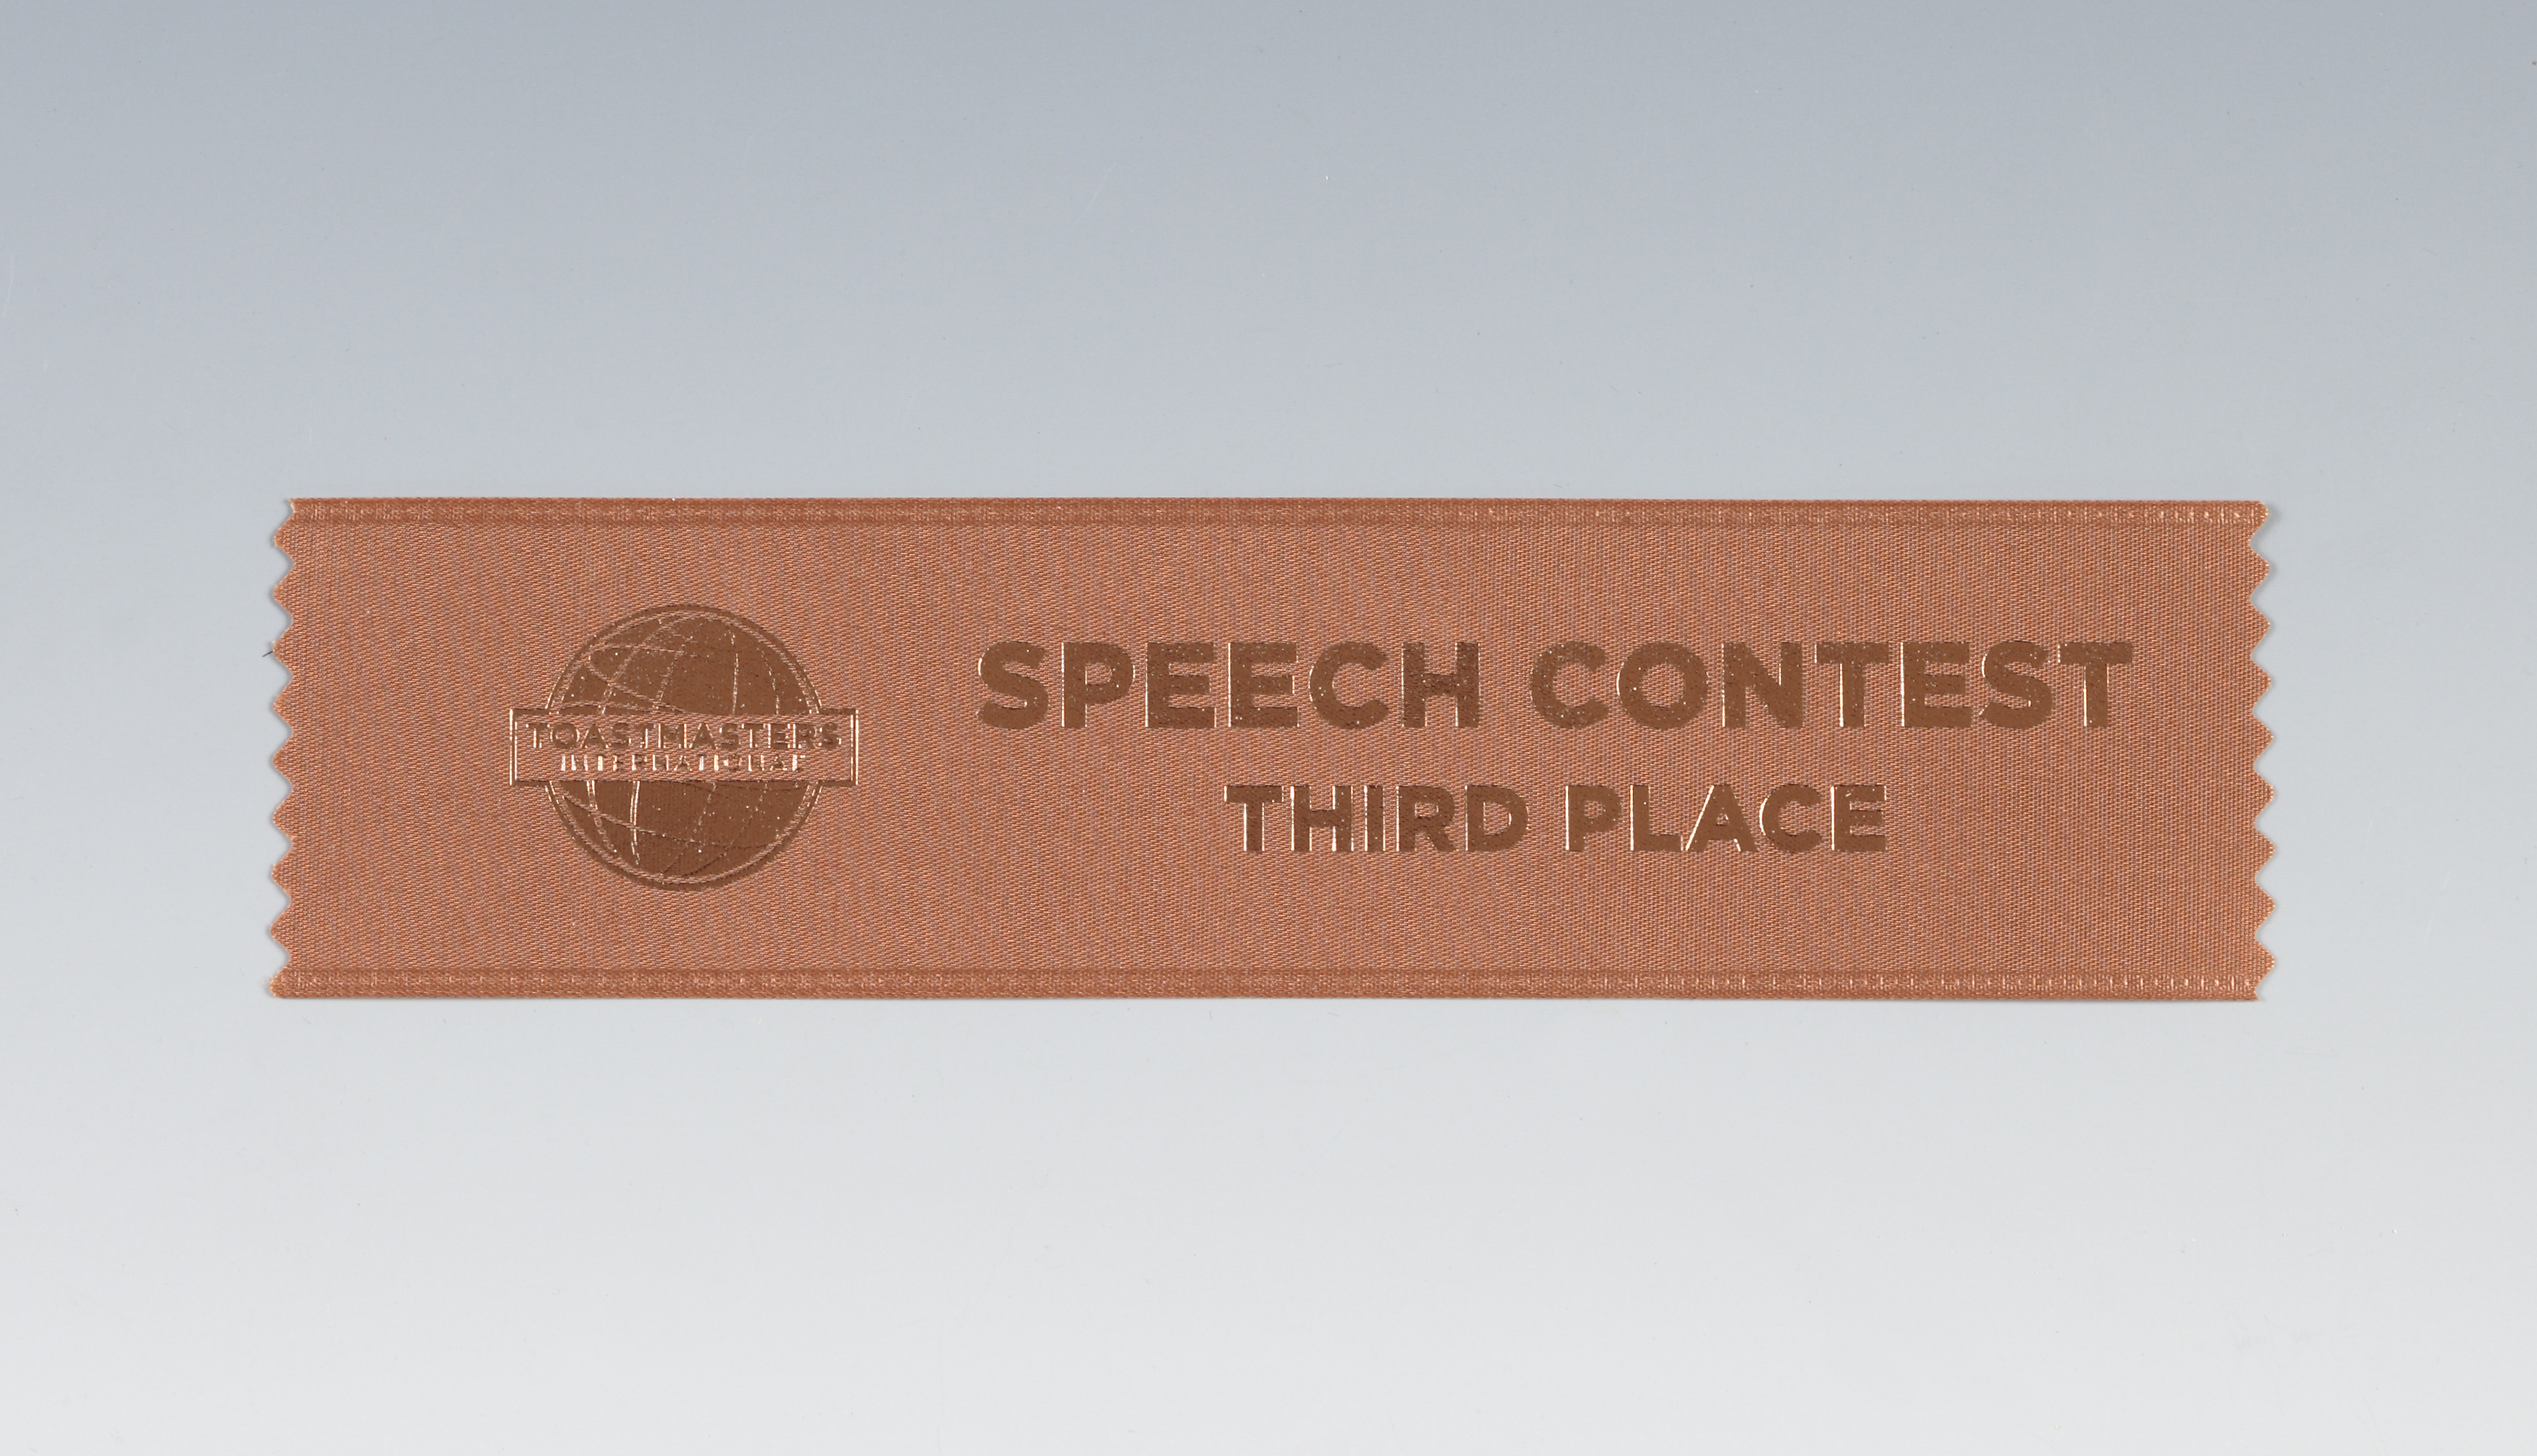 Speech Contest Ribbon (3rd Place)